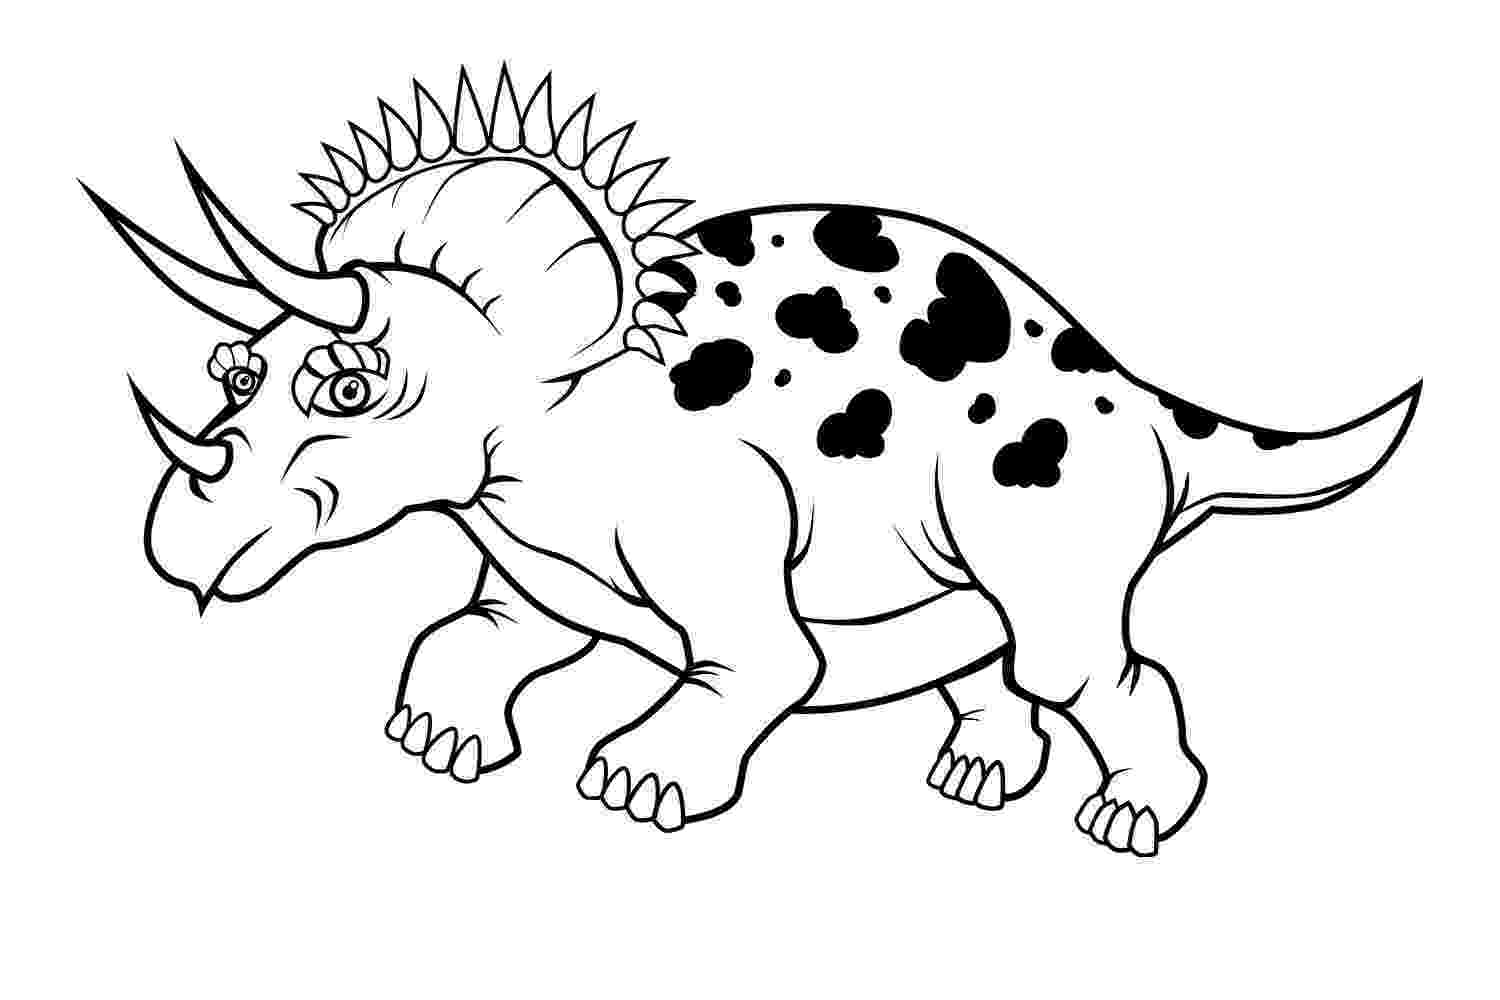 triceratops picture dinosaur coloring pages what to expect triceratops picture